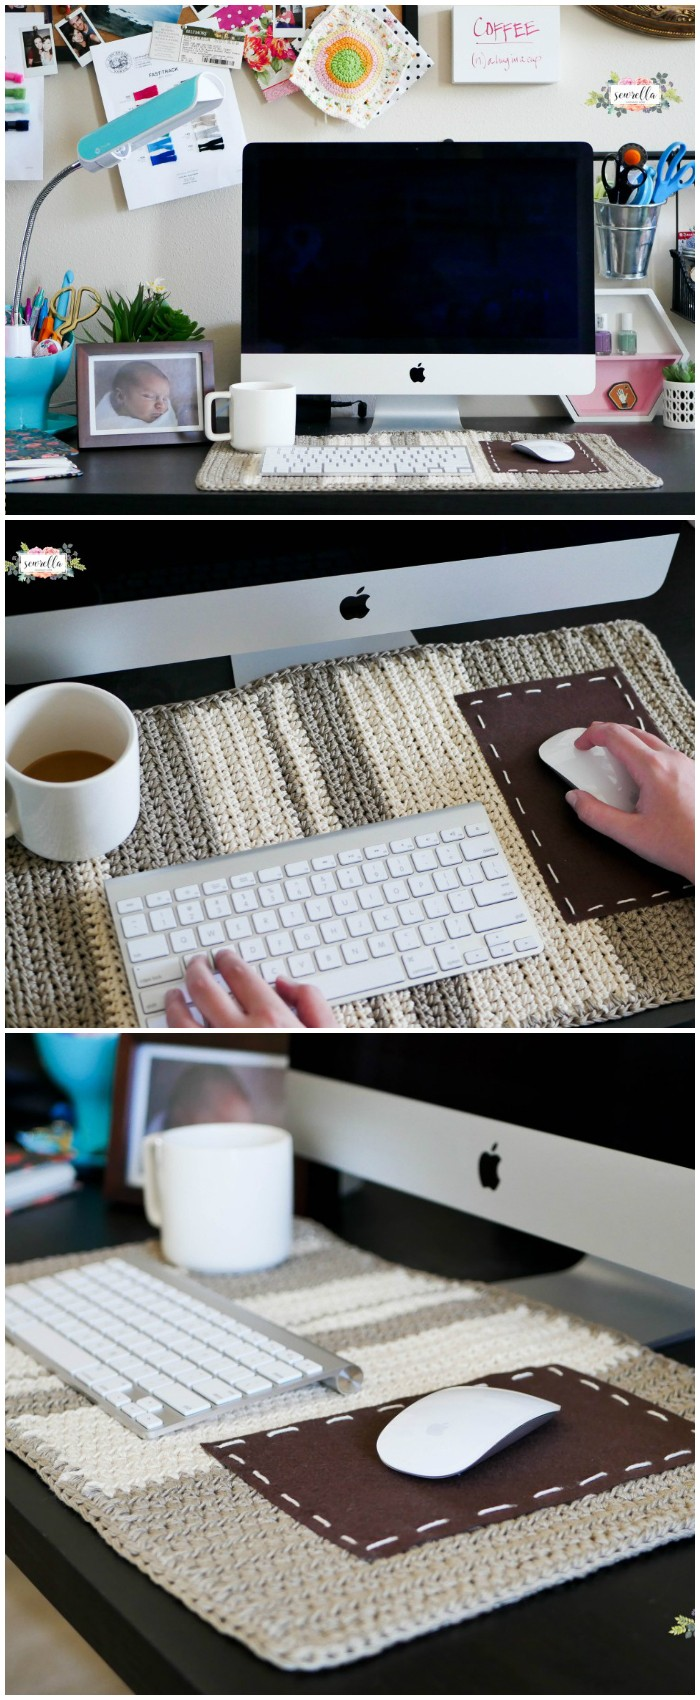 Crochet Desk Mat Free Crochet Pattern From Home To Accessories